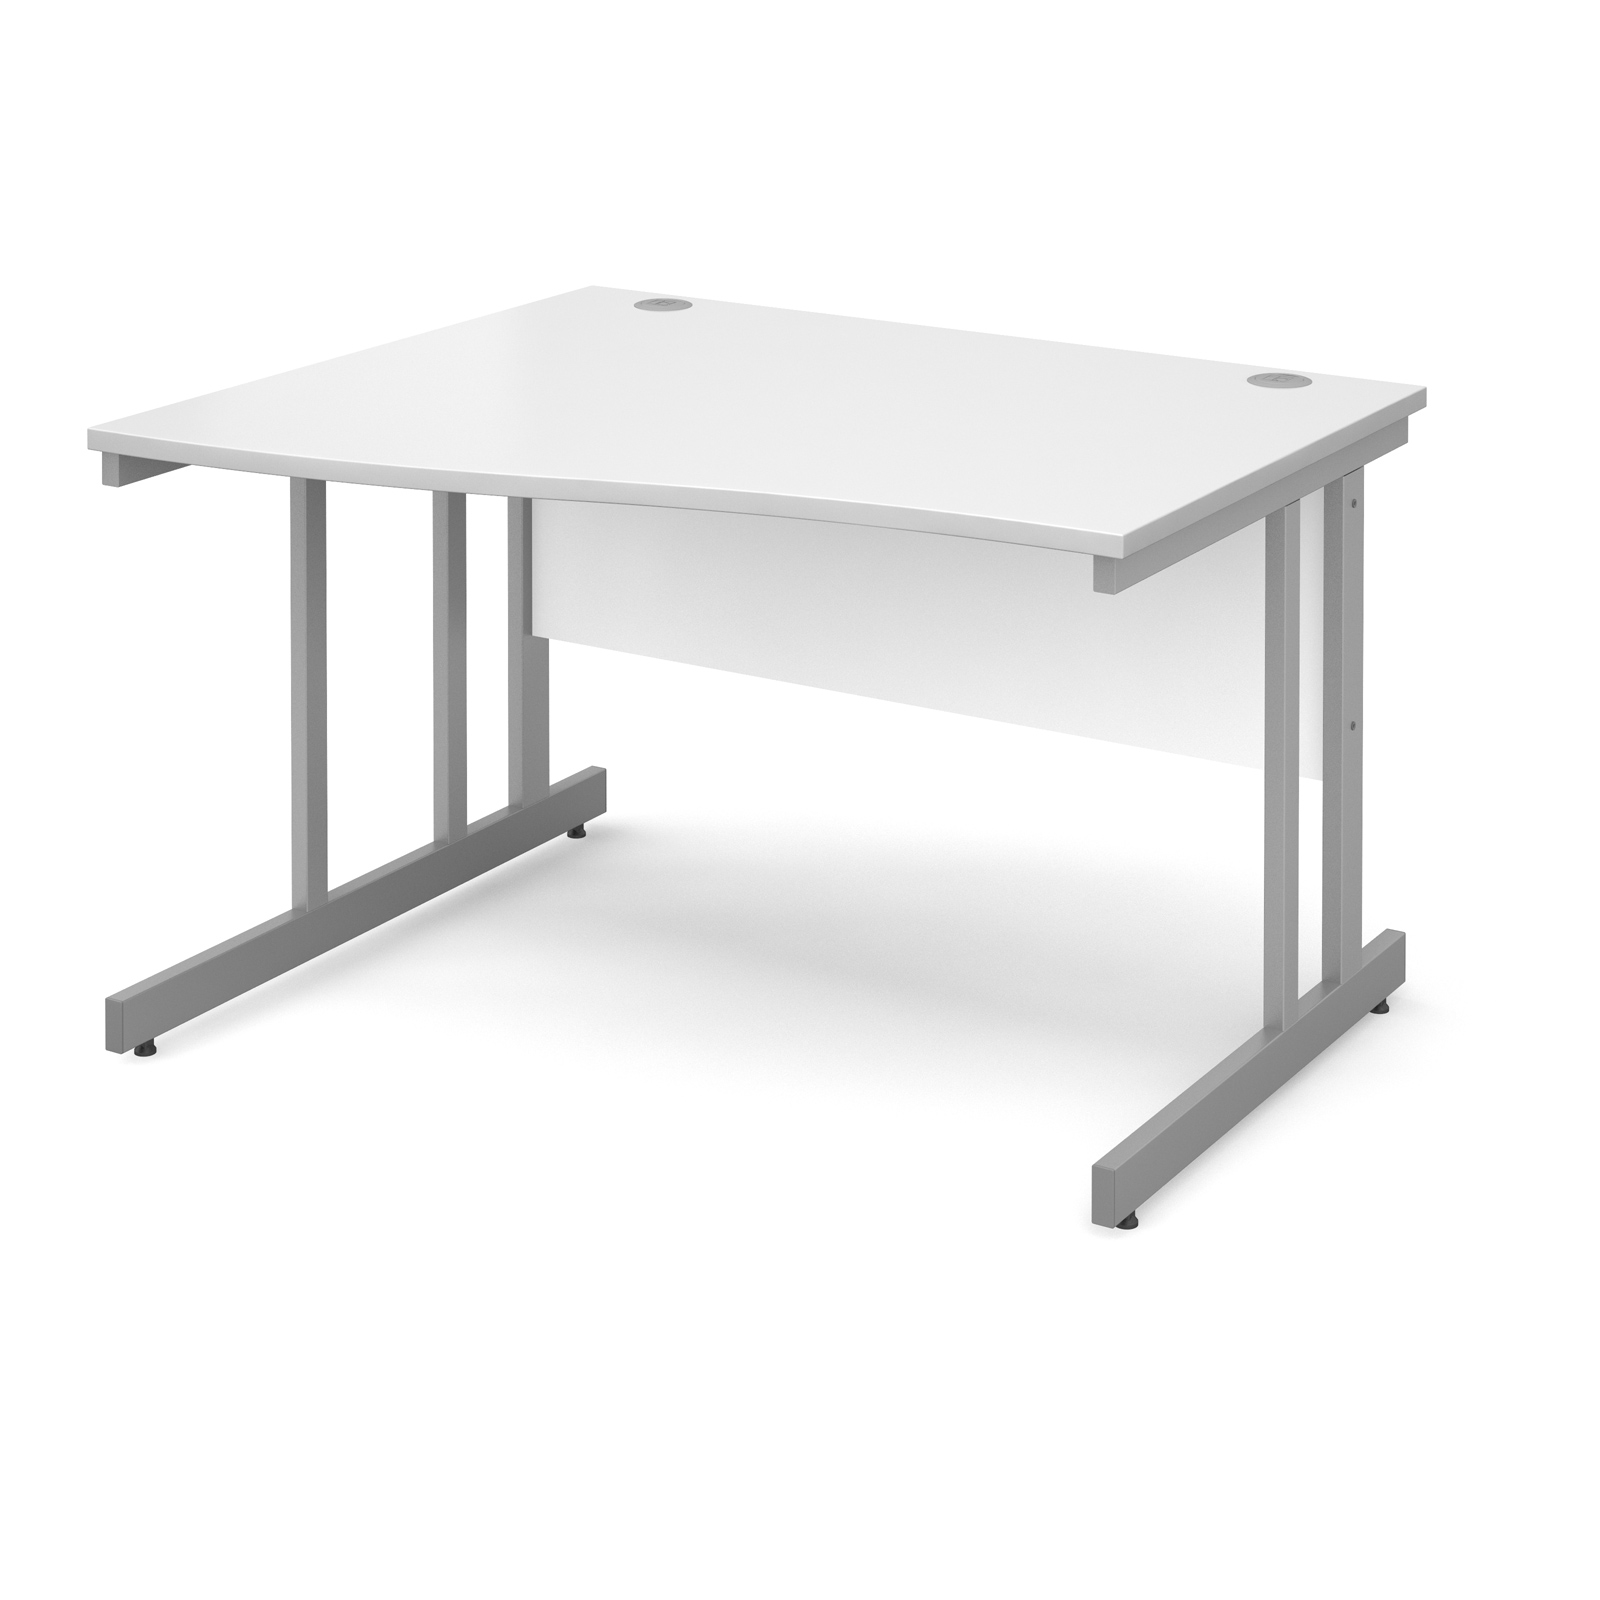 Momento left hand wave desk 1200mm - silver cantilever frame, white top